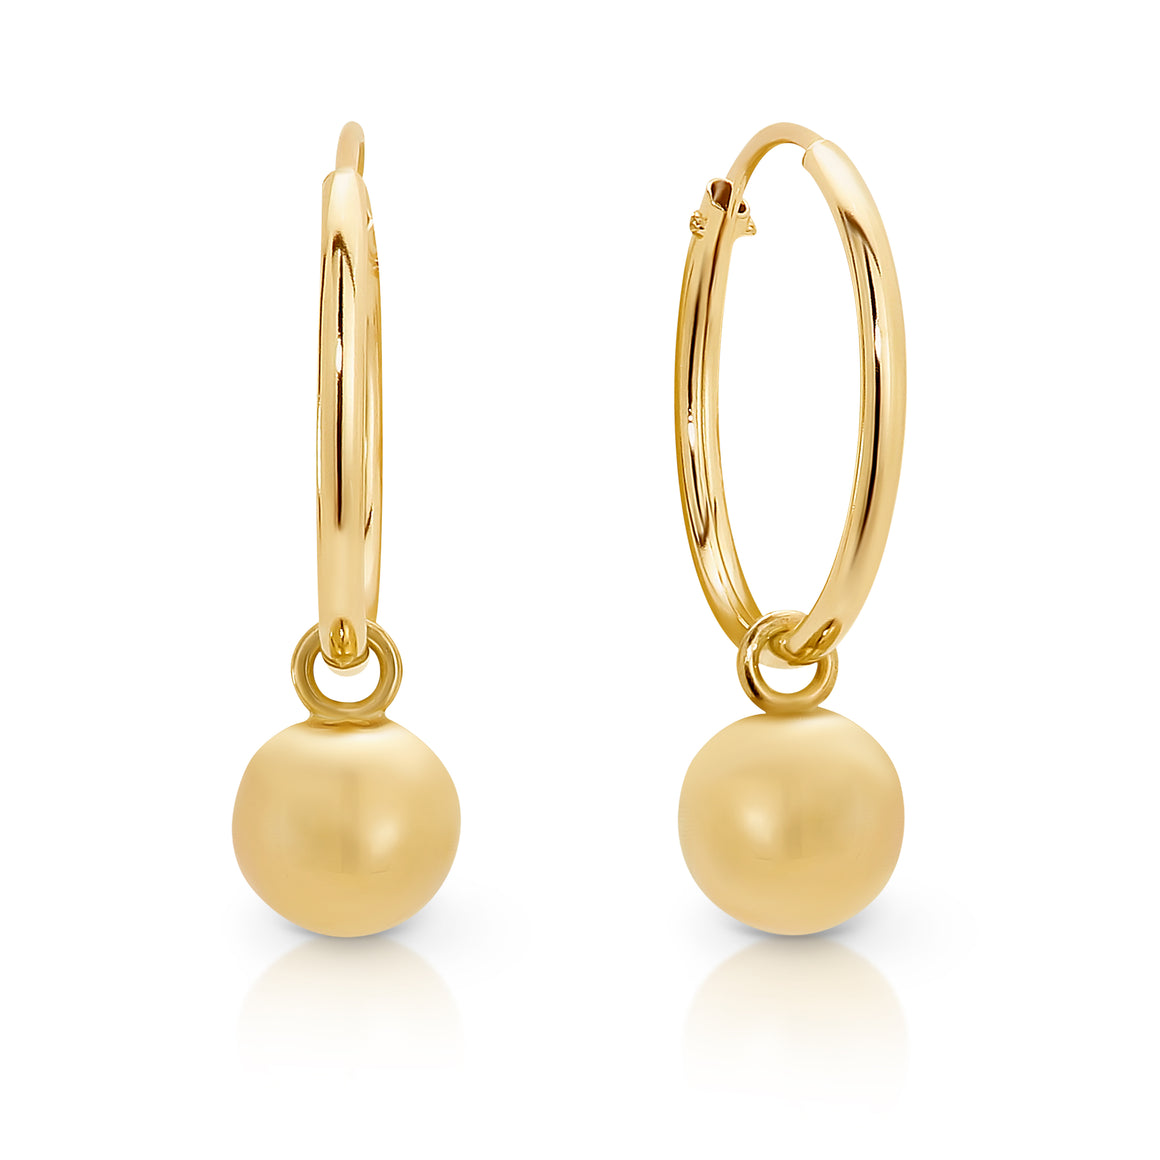 9ct Gold 'Poppy' Hoop Earrings - Gemma Stone  ABN:51 621 127 866